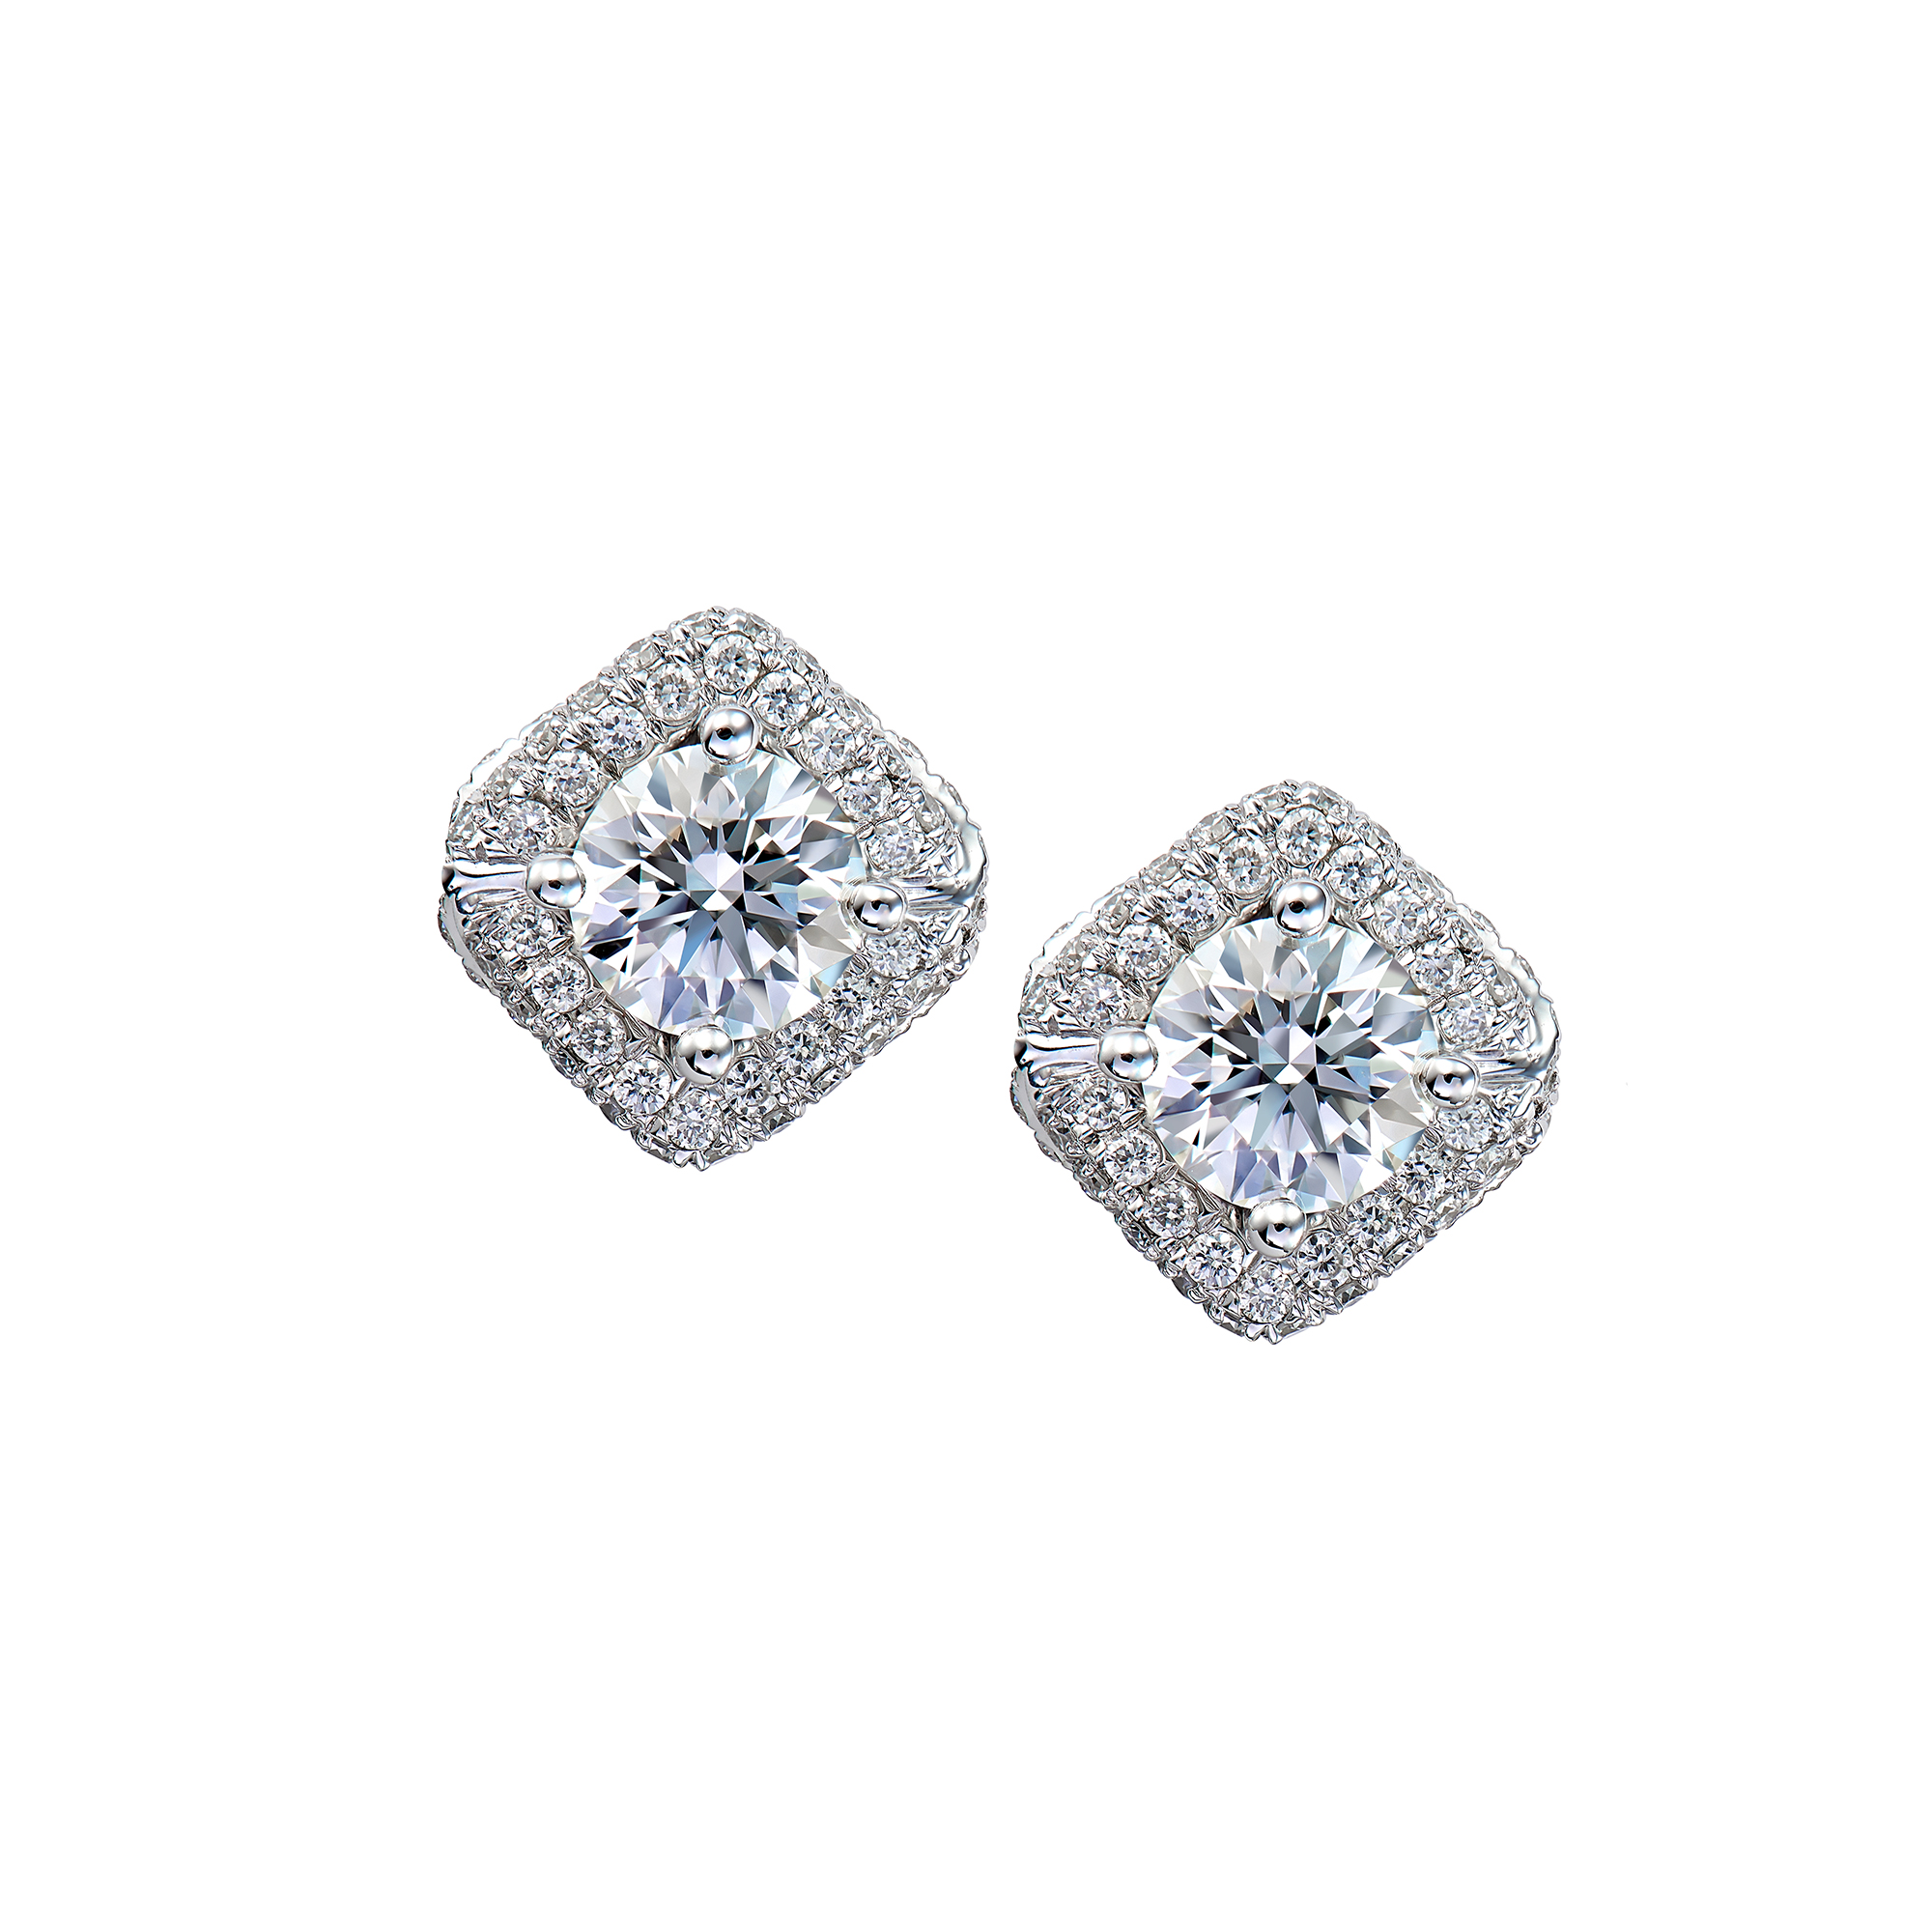 Revel Convertible Stud Earrings